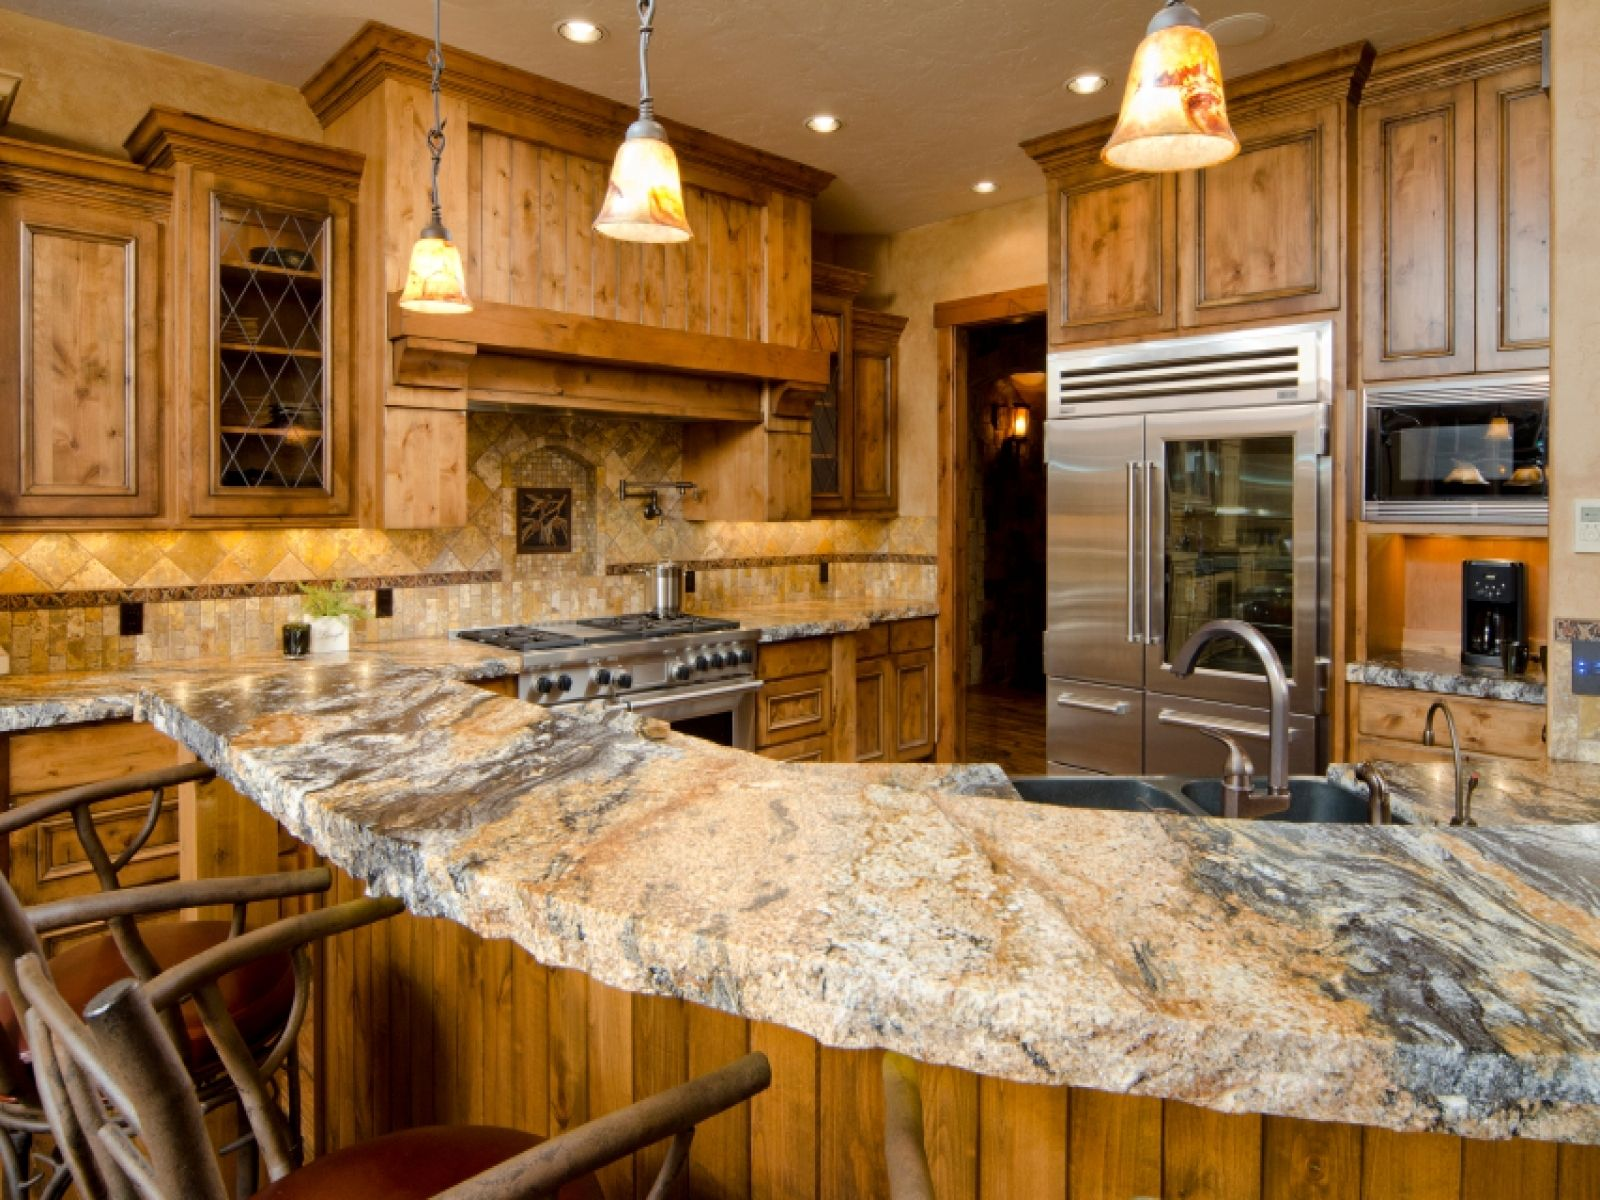 Colors Of Granite Kitchen Countertops Mamaeatsclean Typhoon Bordeaux Laminate A Honey Oak Kitchen